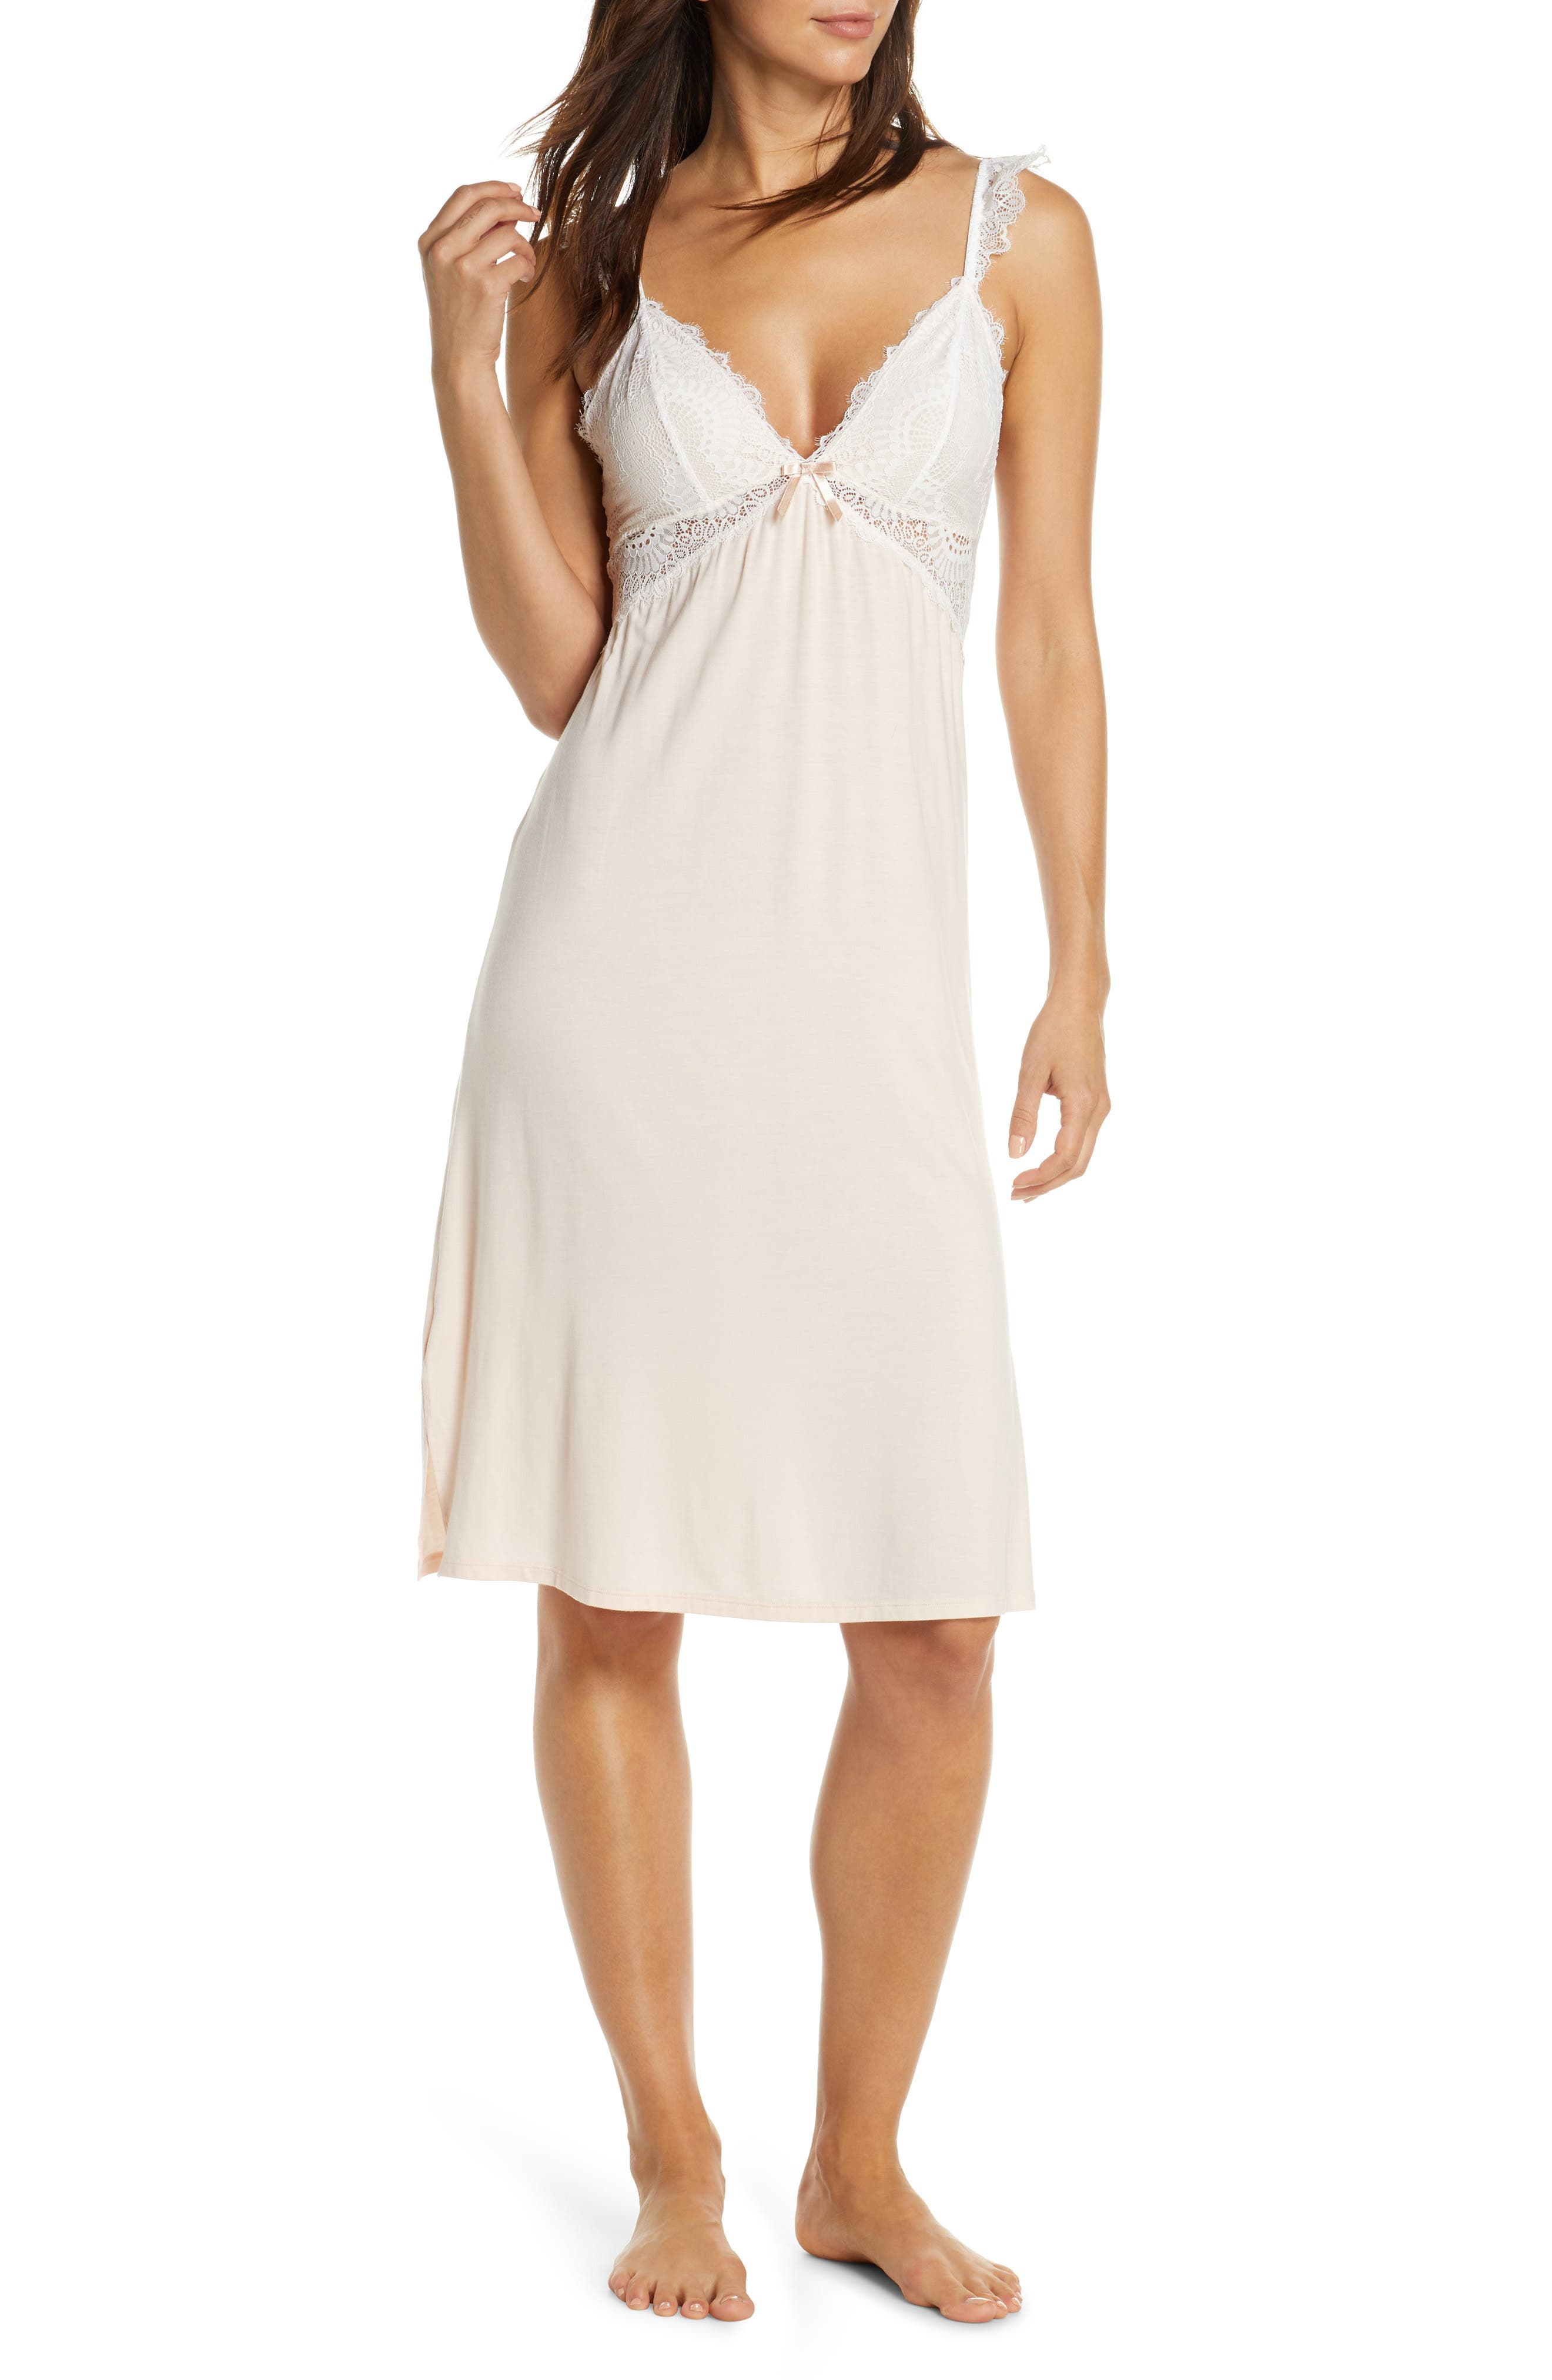 Homebodii Petra Nightgown, Pink